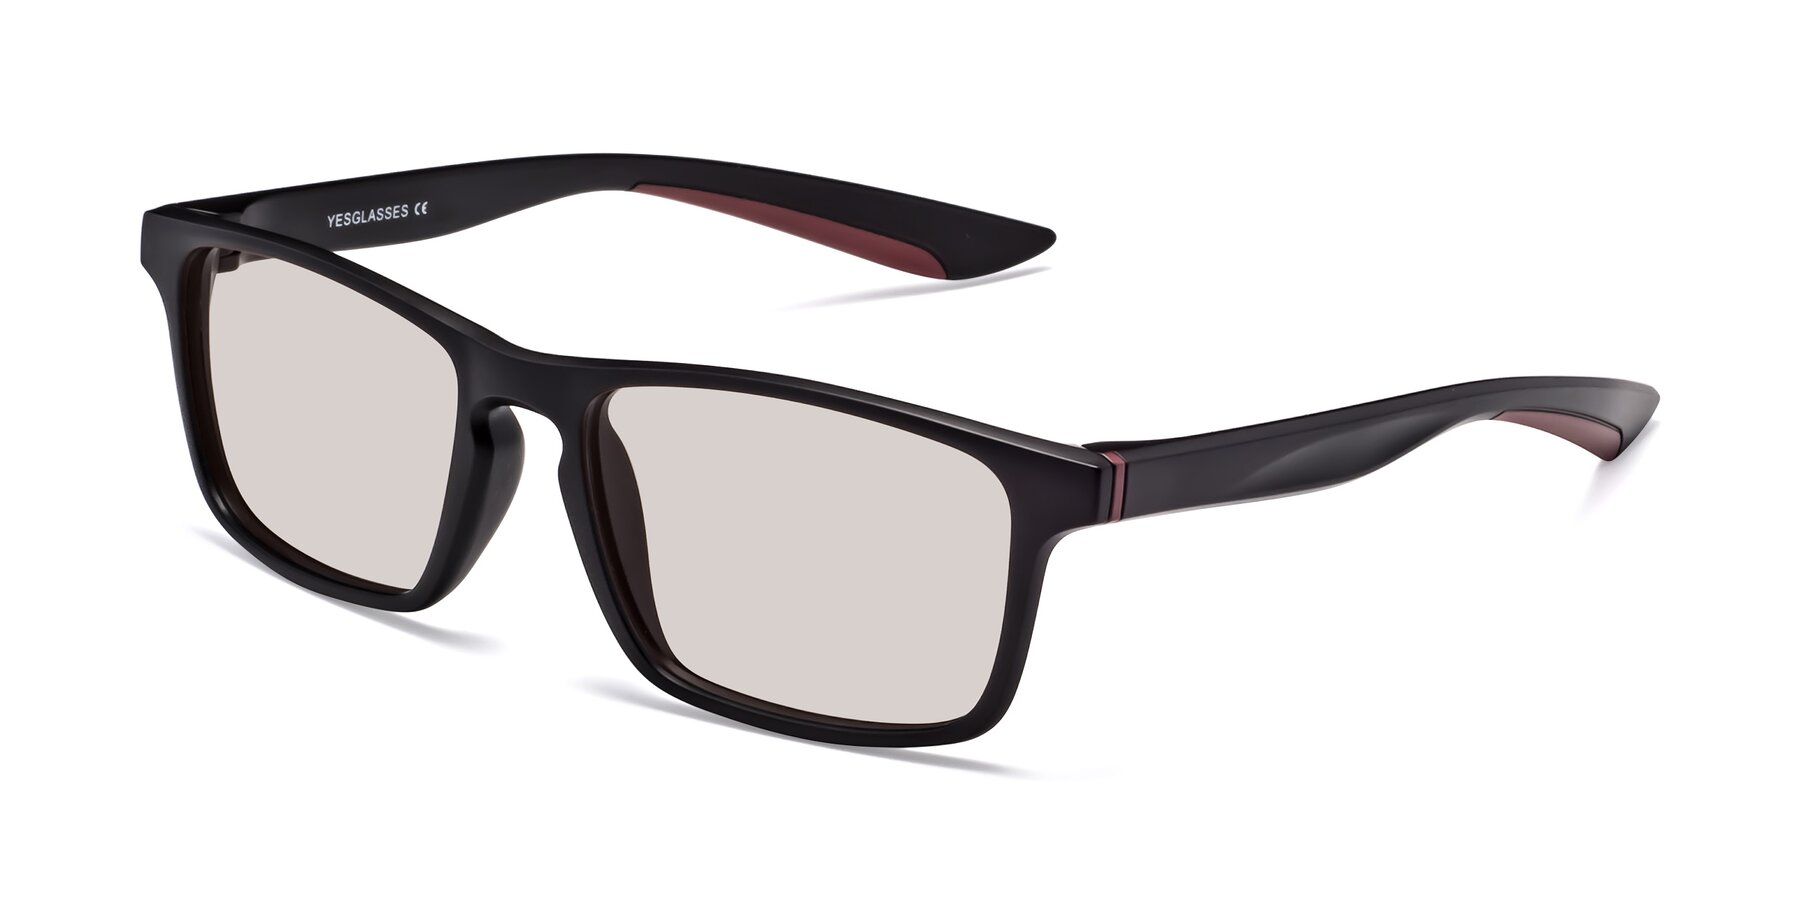 Angle of Passion in Matte Black-Wine with Light Brown Tinted Lenses